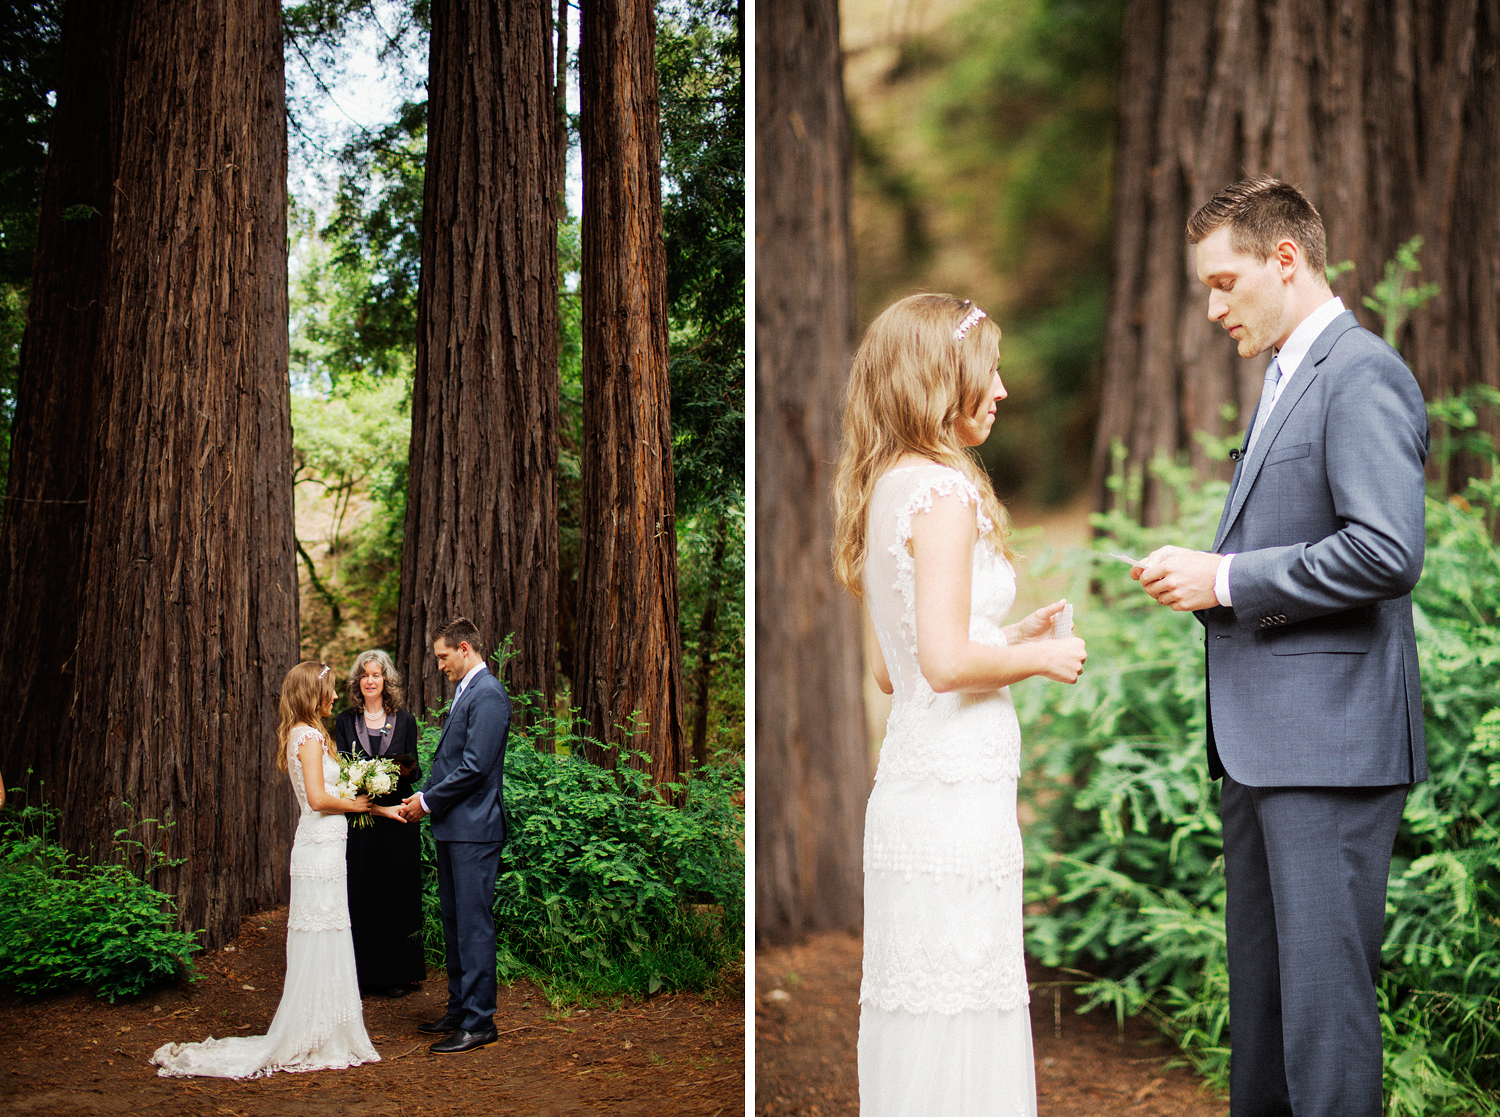 keblog-big-sur-wedding-ryan-flynn-photography-0019.JPG